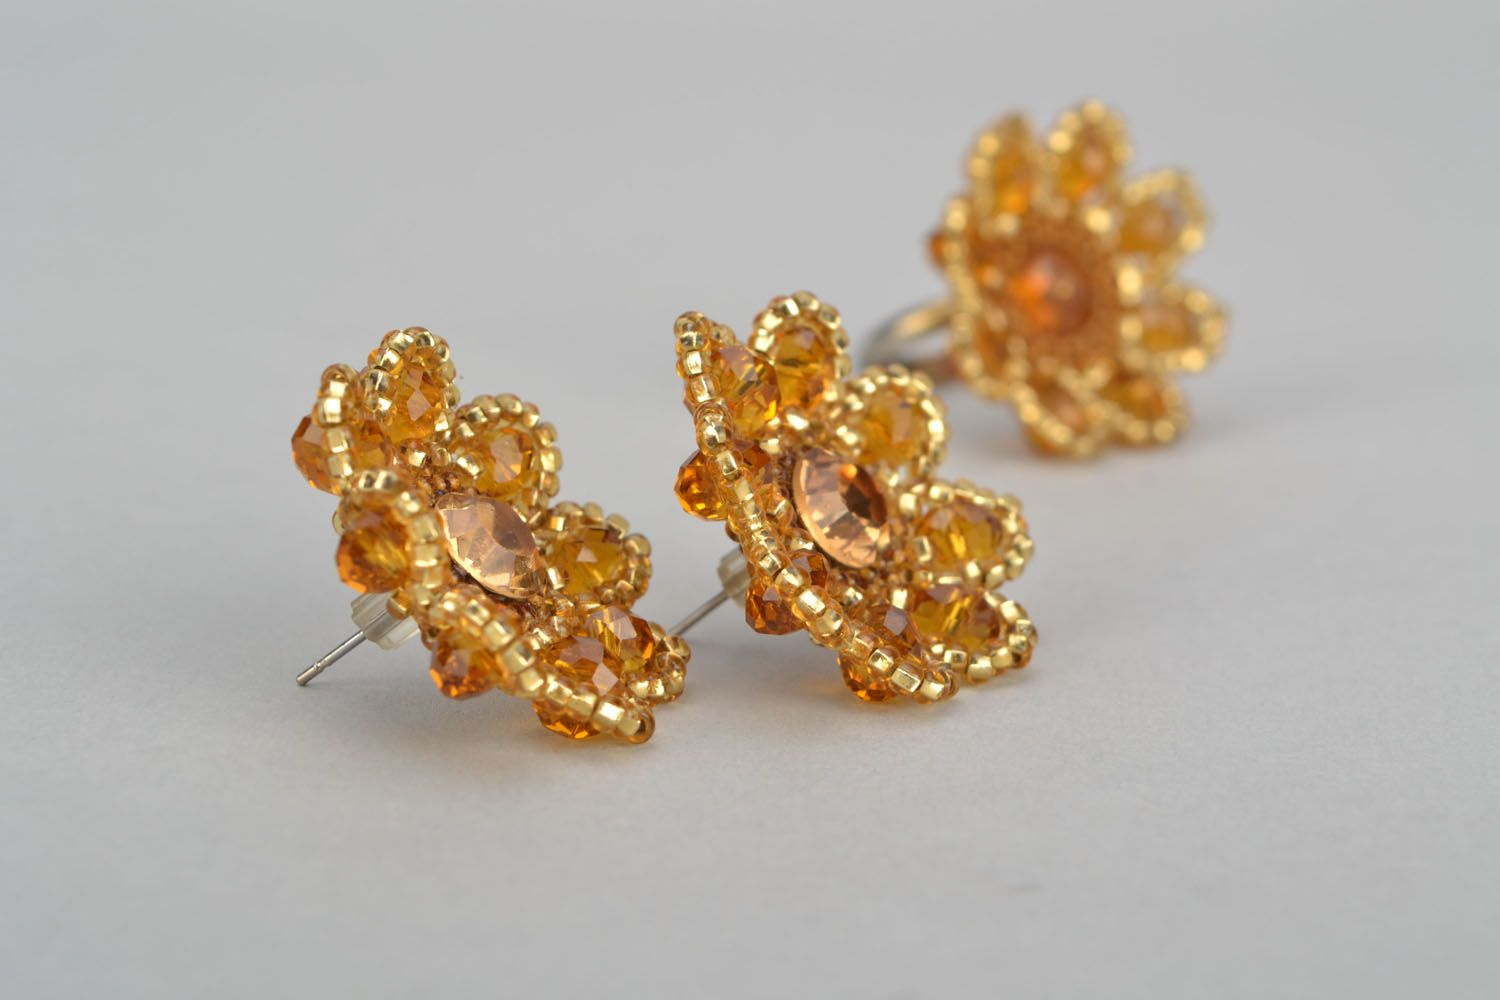 Stud earrings and ring made of beads photo 5